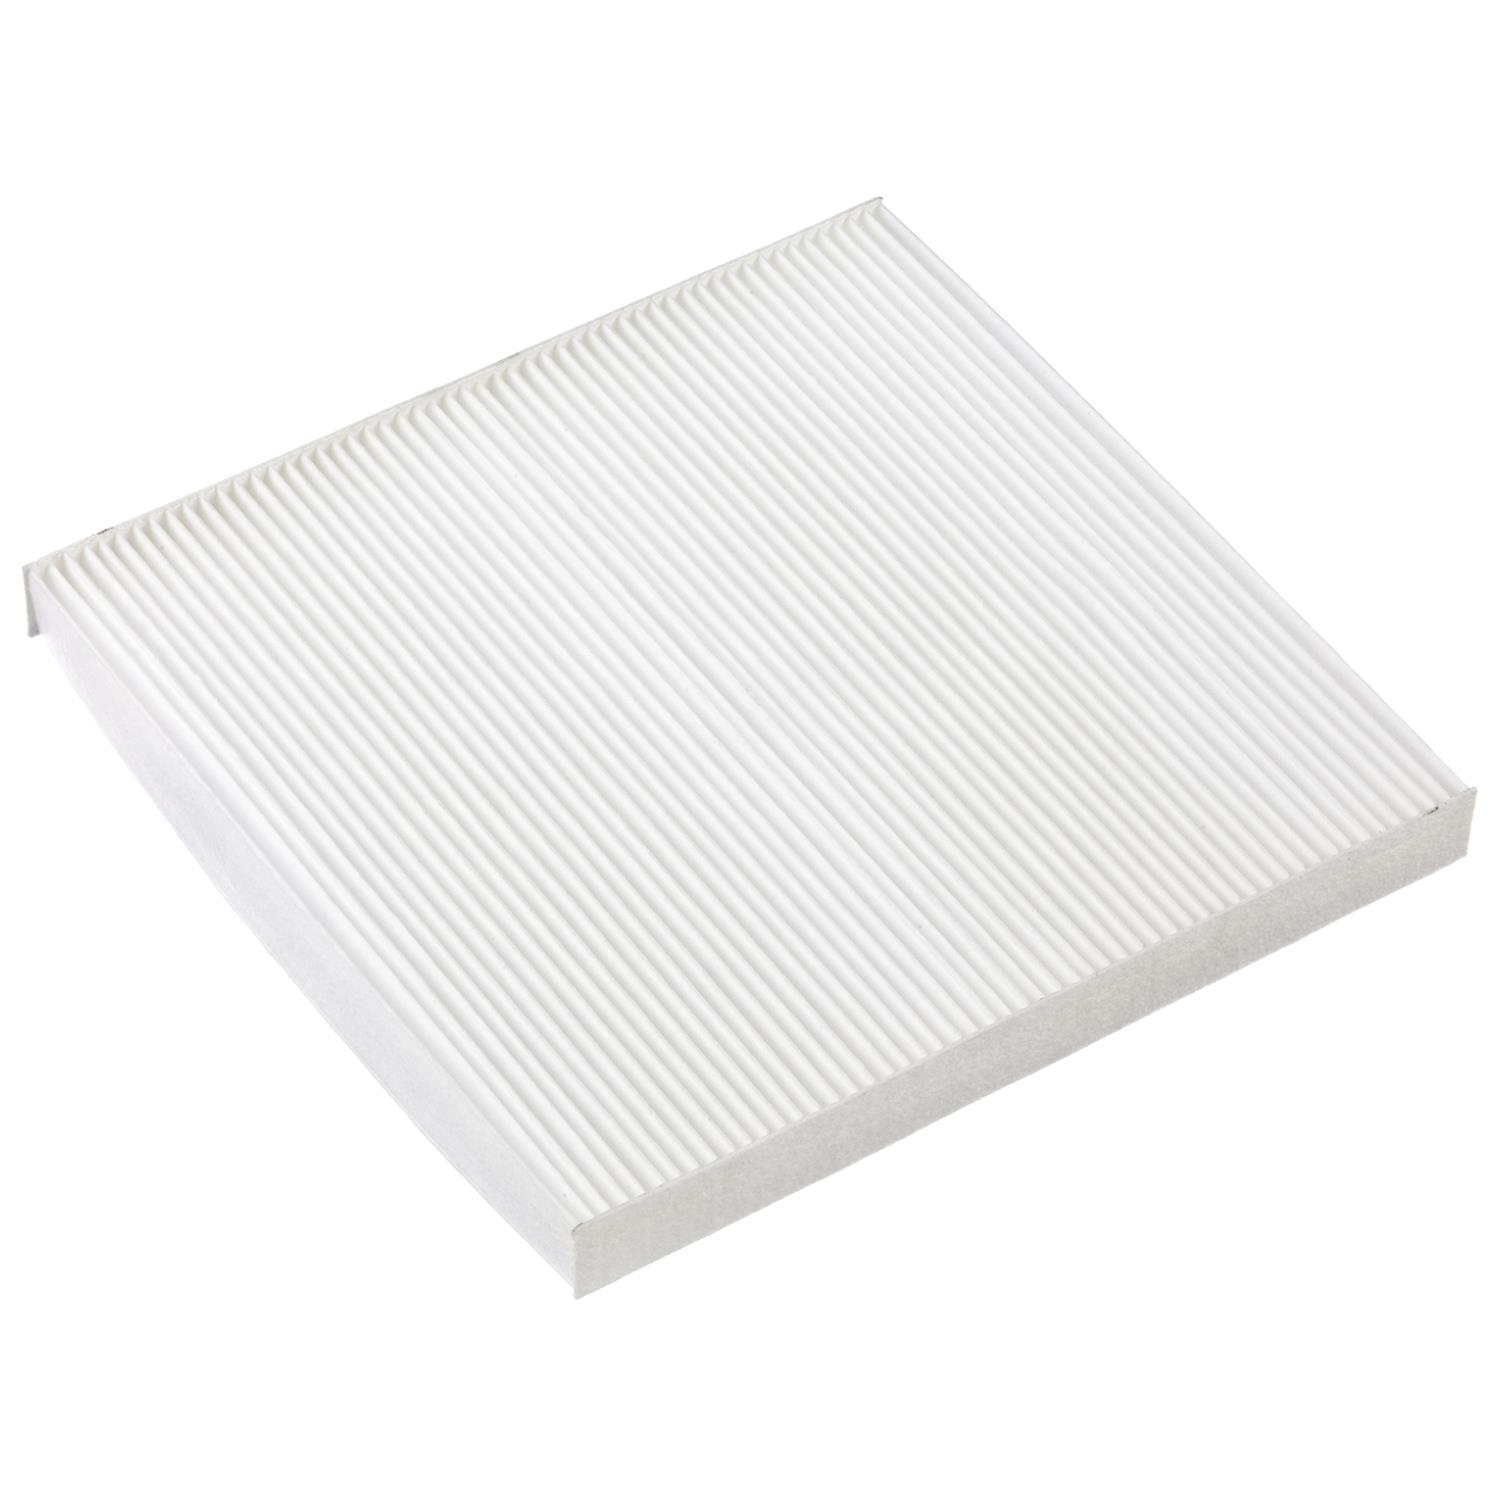 ATP Automotive CF-206 Replacement Cabin Filter